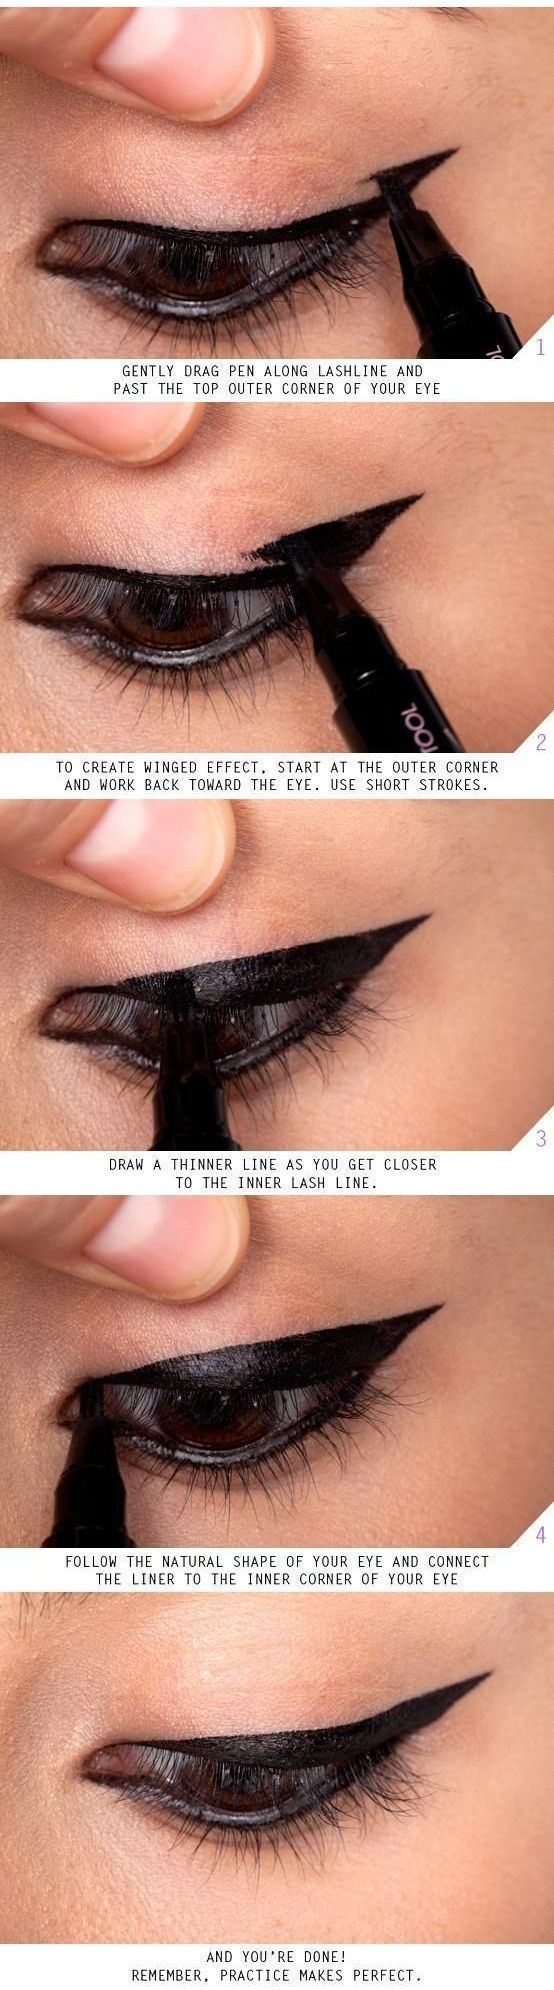 17 Great Eyeliner Hacks   DIY Tutorials For A Dramatic Makeup Look With Easy Tips & Tricks Every Girl Should Know By Makeup Tutorials  http://makeuptutorials.com/makeup-tutorials-17-great-eyeliner-hacks/ https://www.pinterest.com/pin/447826756671715973/